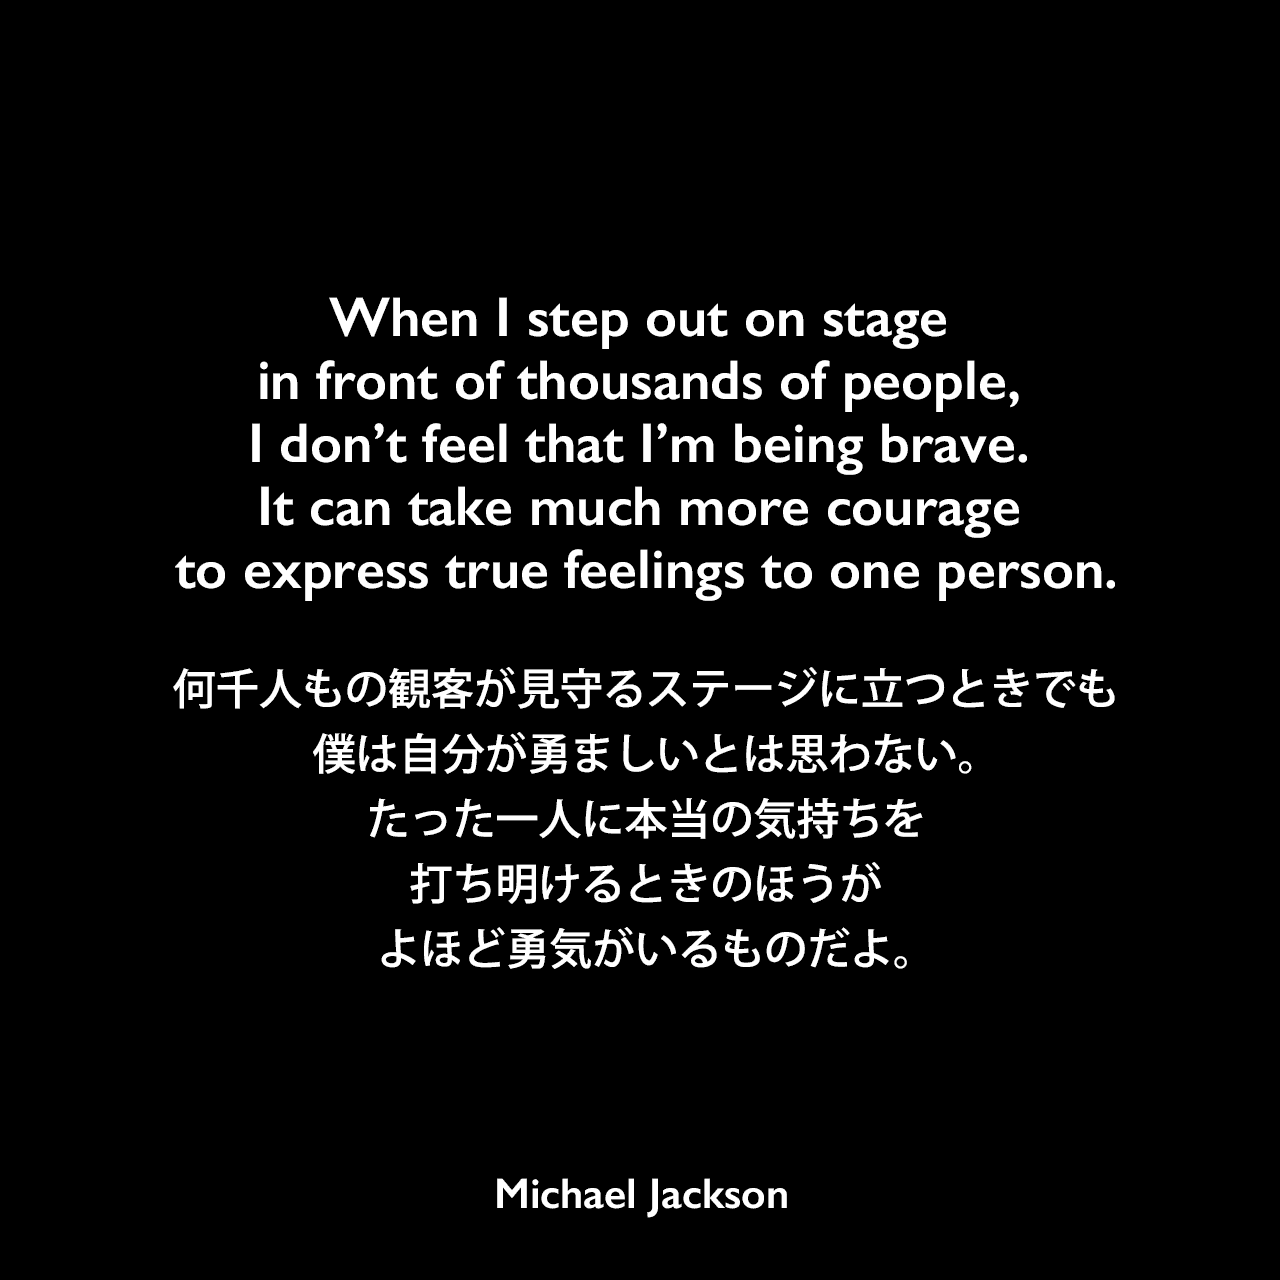 When I step out on stage in front of thousands of people, I don't feel that I'm being brave. It can take much more courage to express true feelings to one person.何千人もの観客が見守るステージに立つときでも、僕は自分が勇ましいとは思わない。たった一人に本当の気持ちを打ち明けるときのほうが、よほど勇気がいるものだよ。Michael Jackson